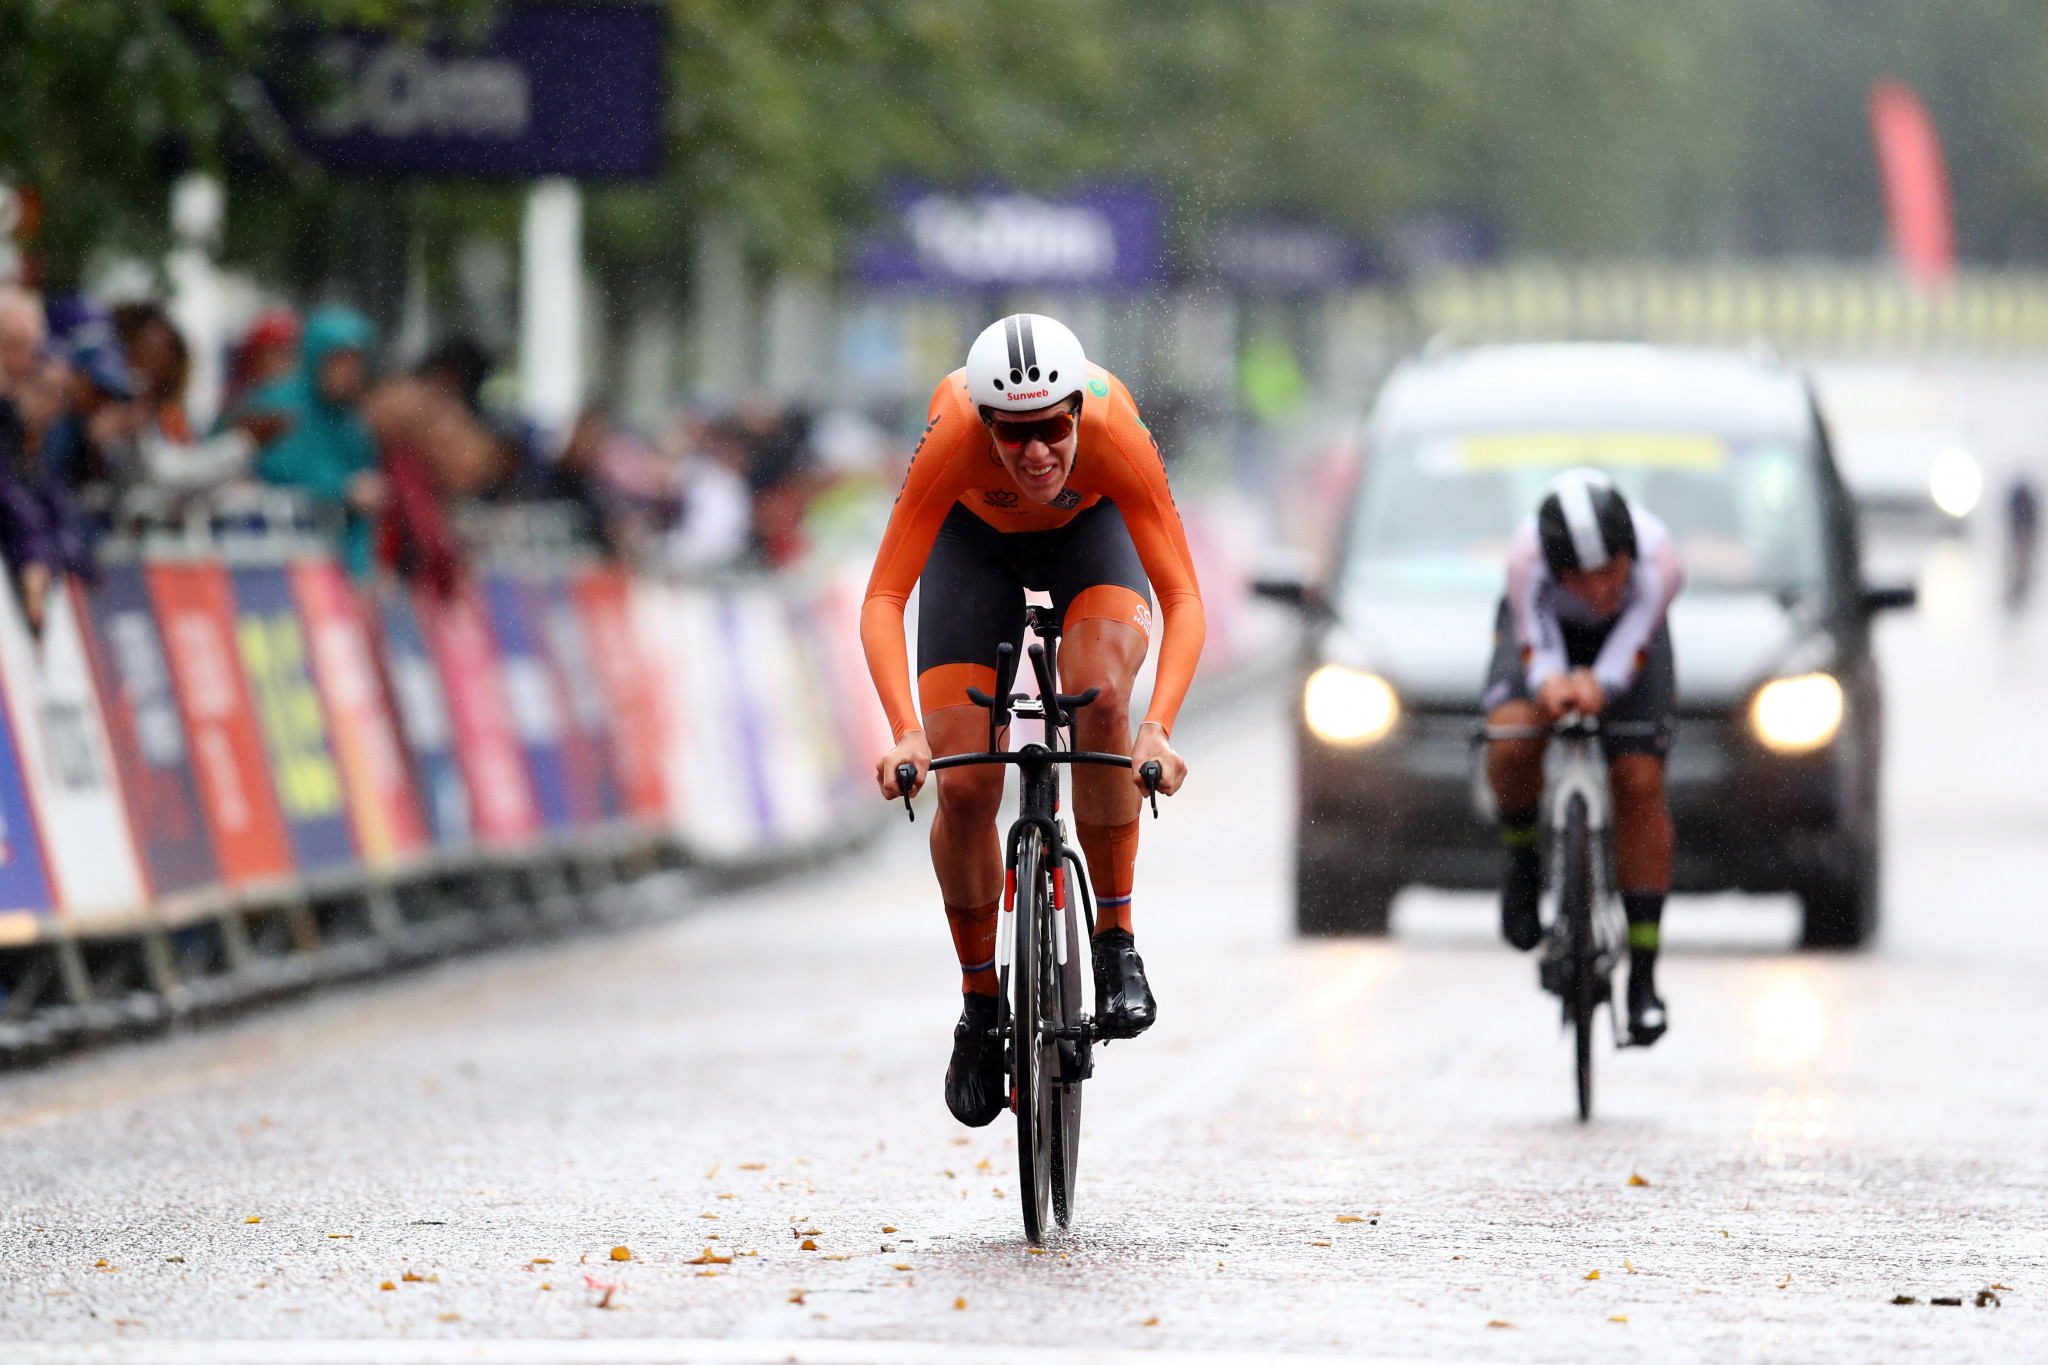 Van Dijk edges compatriot on weather-affected course to win third consecutive European Championships time trial gold